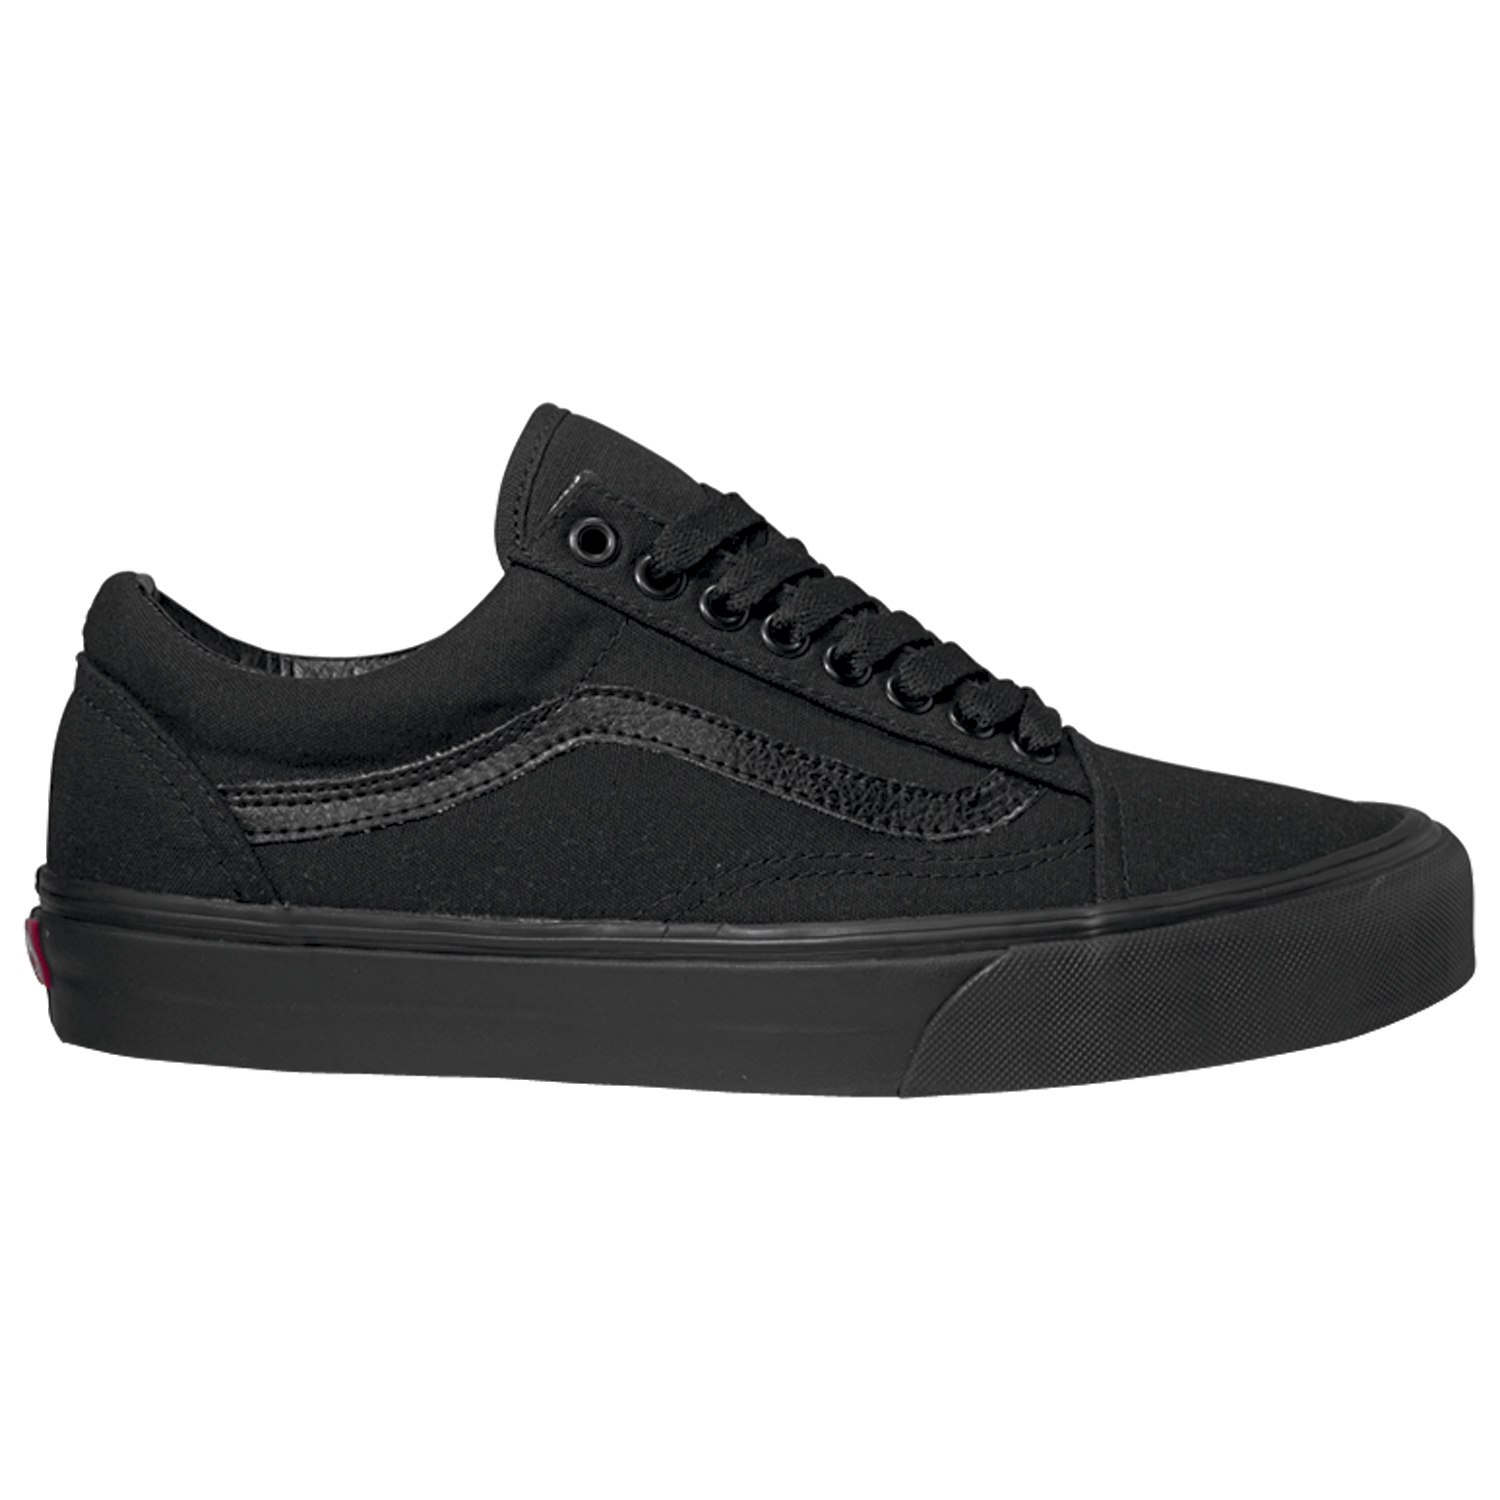 vans-old-skool-black-black-119-90